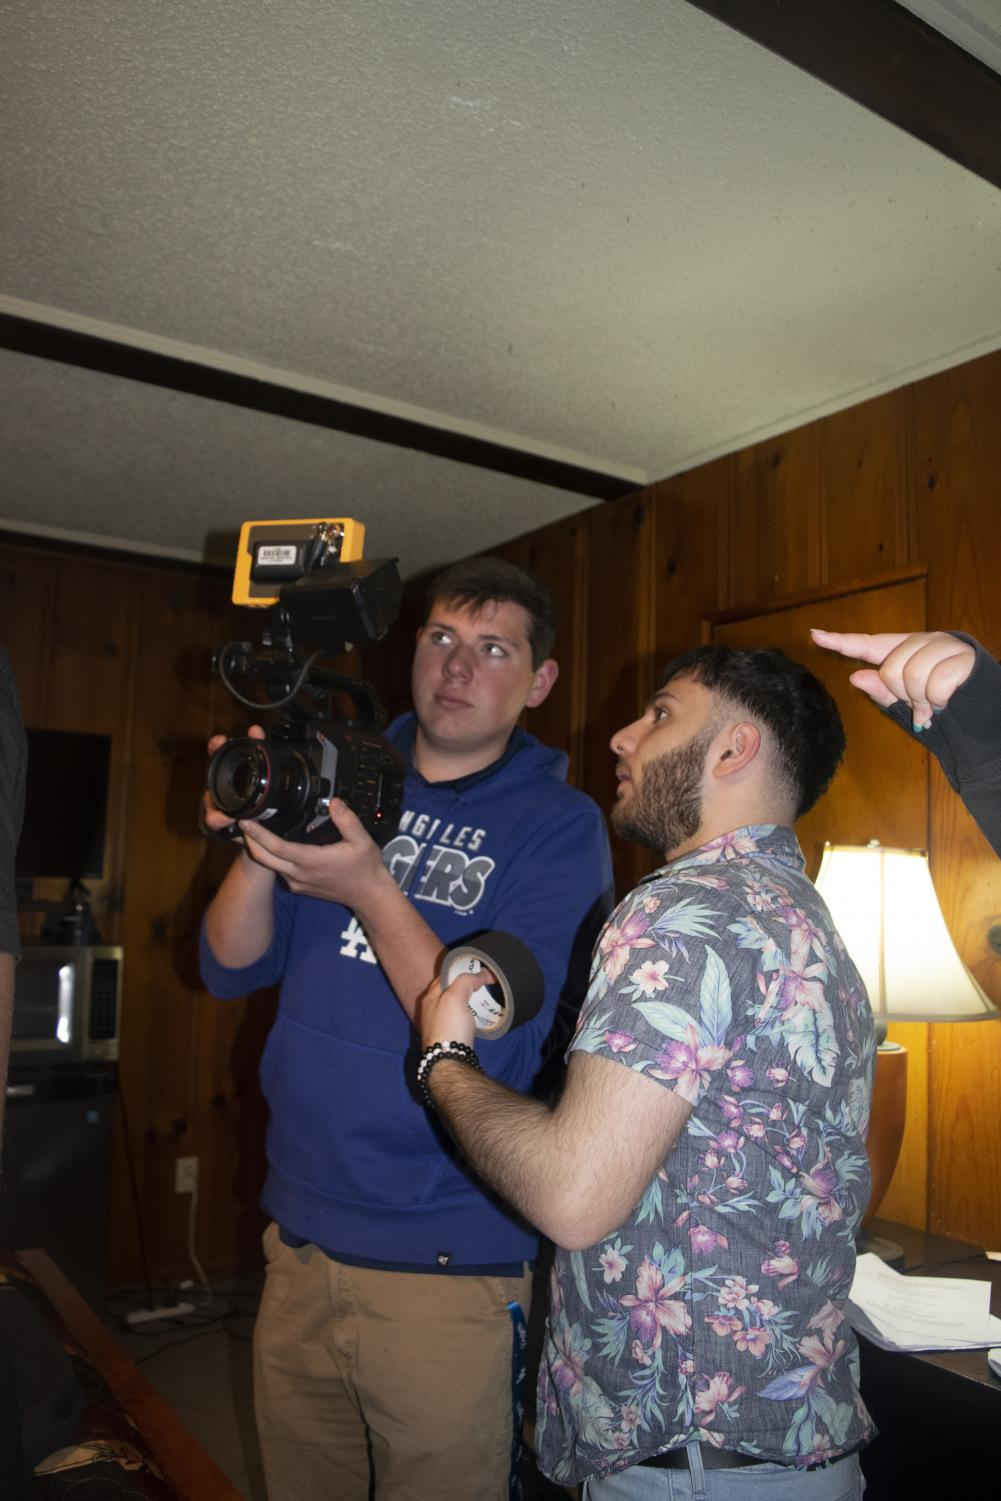 Senior Cameraman Wayne Baker and senior Director Harutyun Maranjyan look into the camera to make sure the lighting works with the scene.